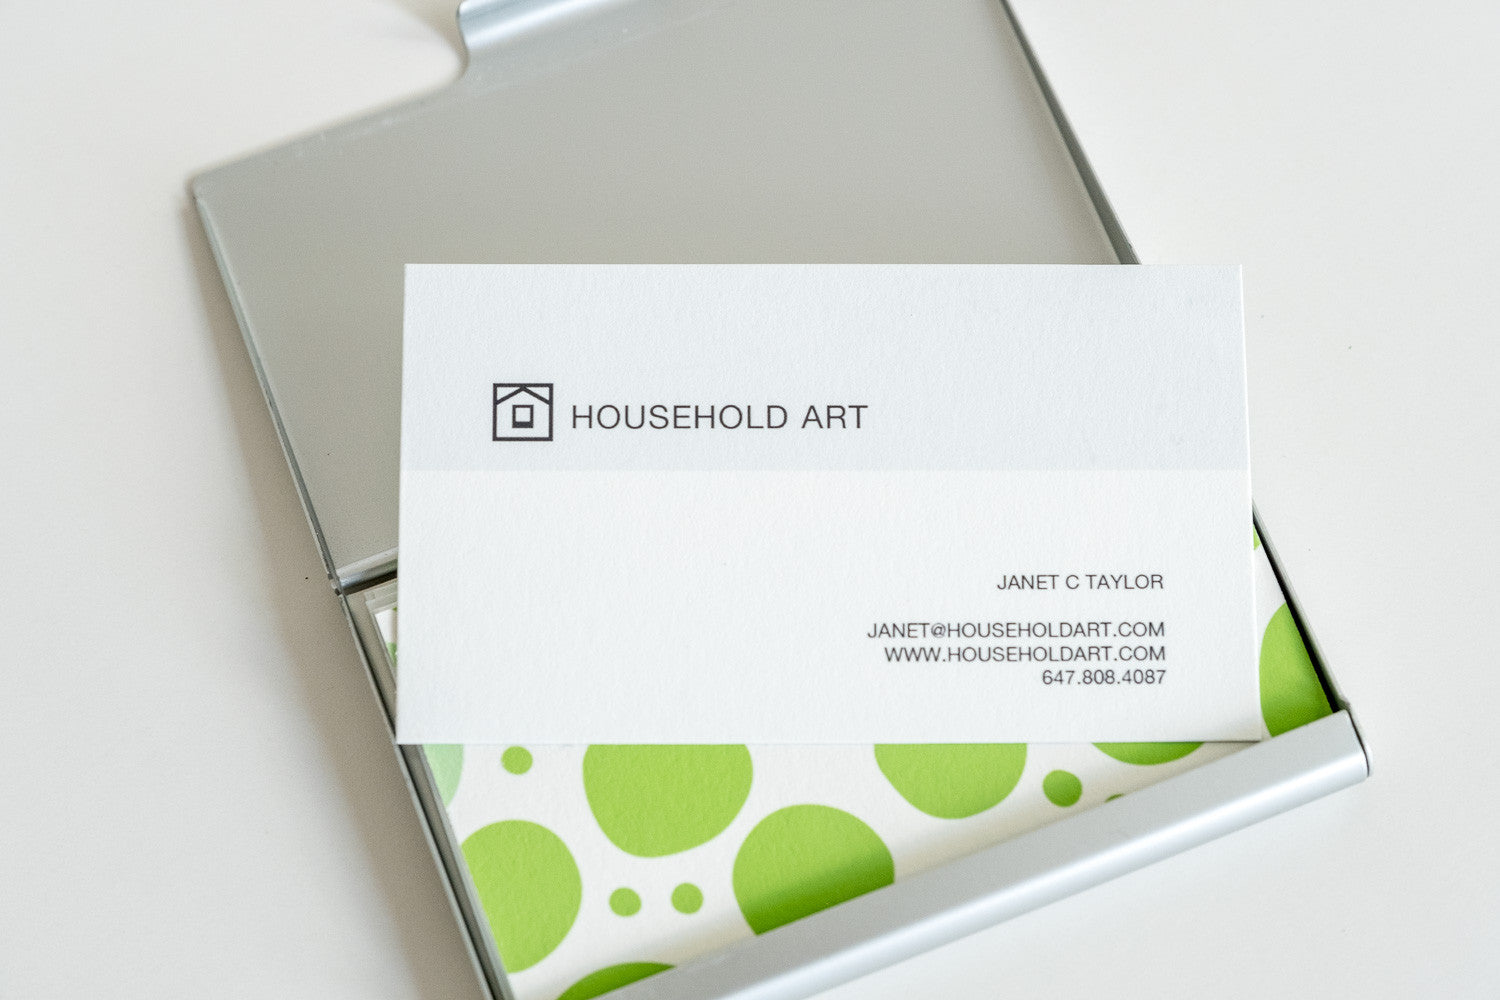 Waste Not My New Art Paper Printed Business Cards Household Card Holder Name Holders 6215 Click Through Below To See The Stages Of These Coming Life